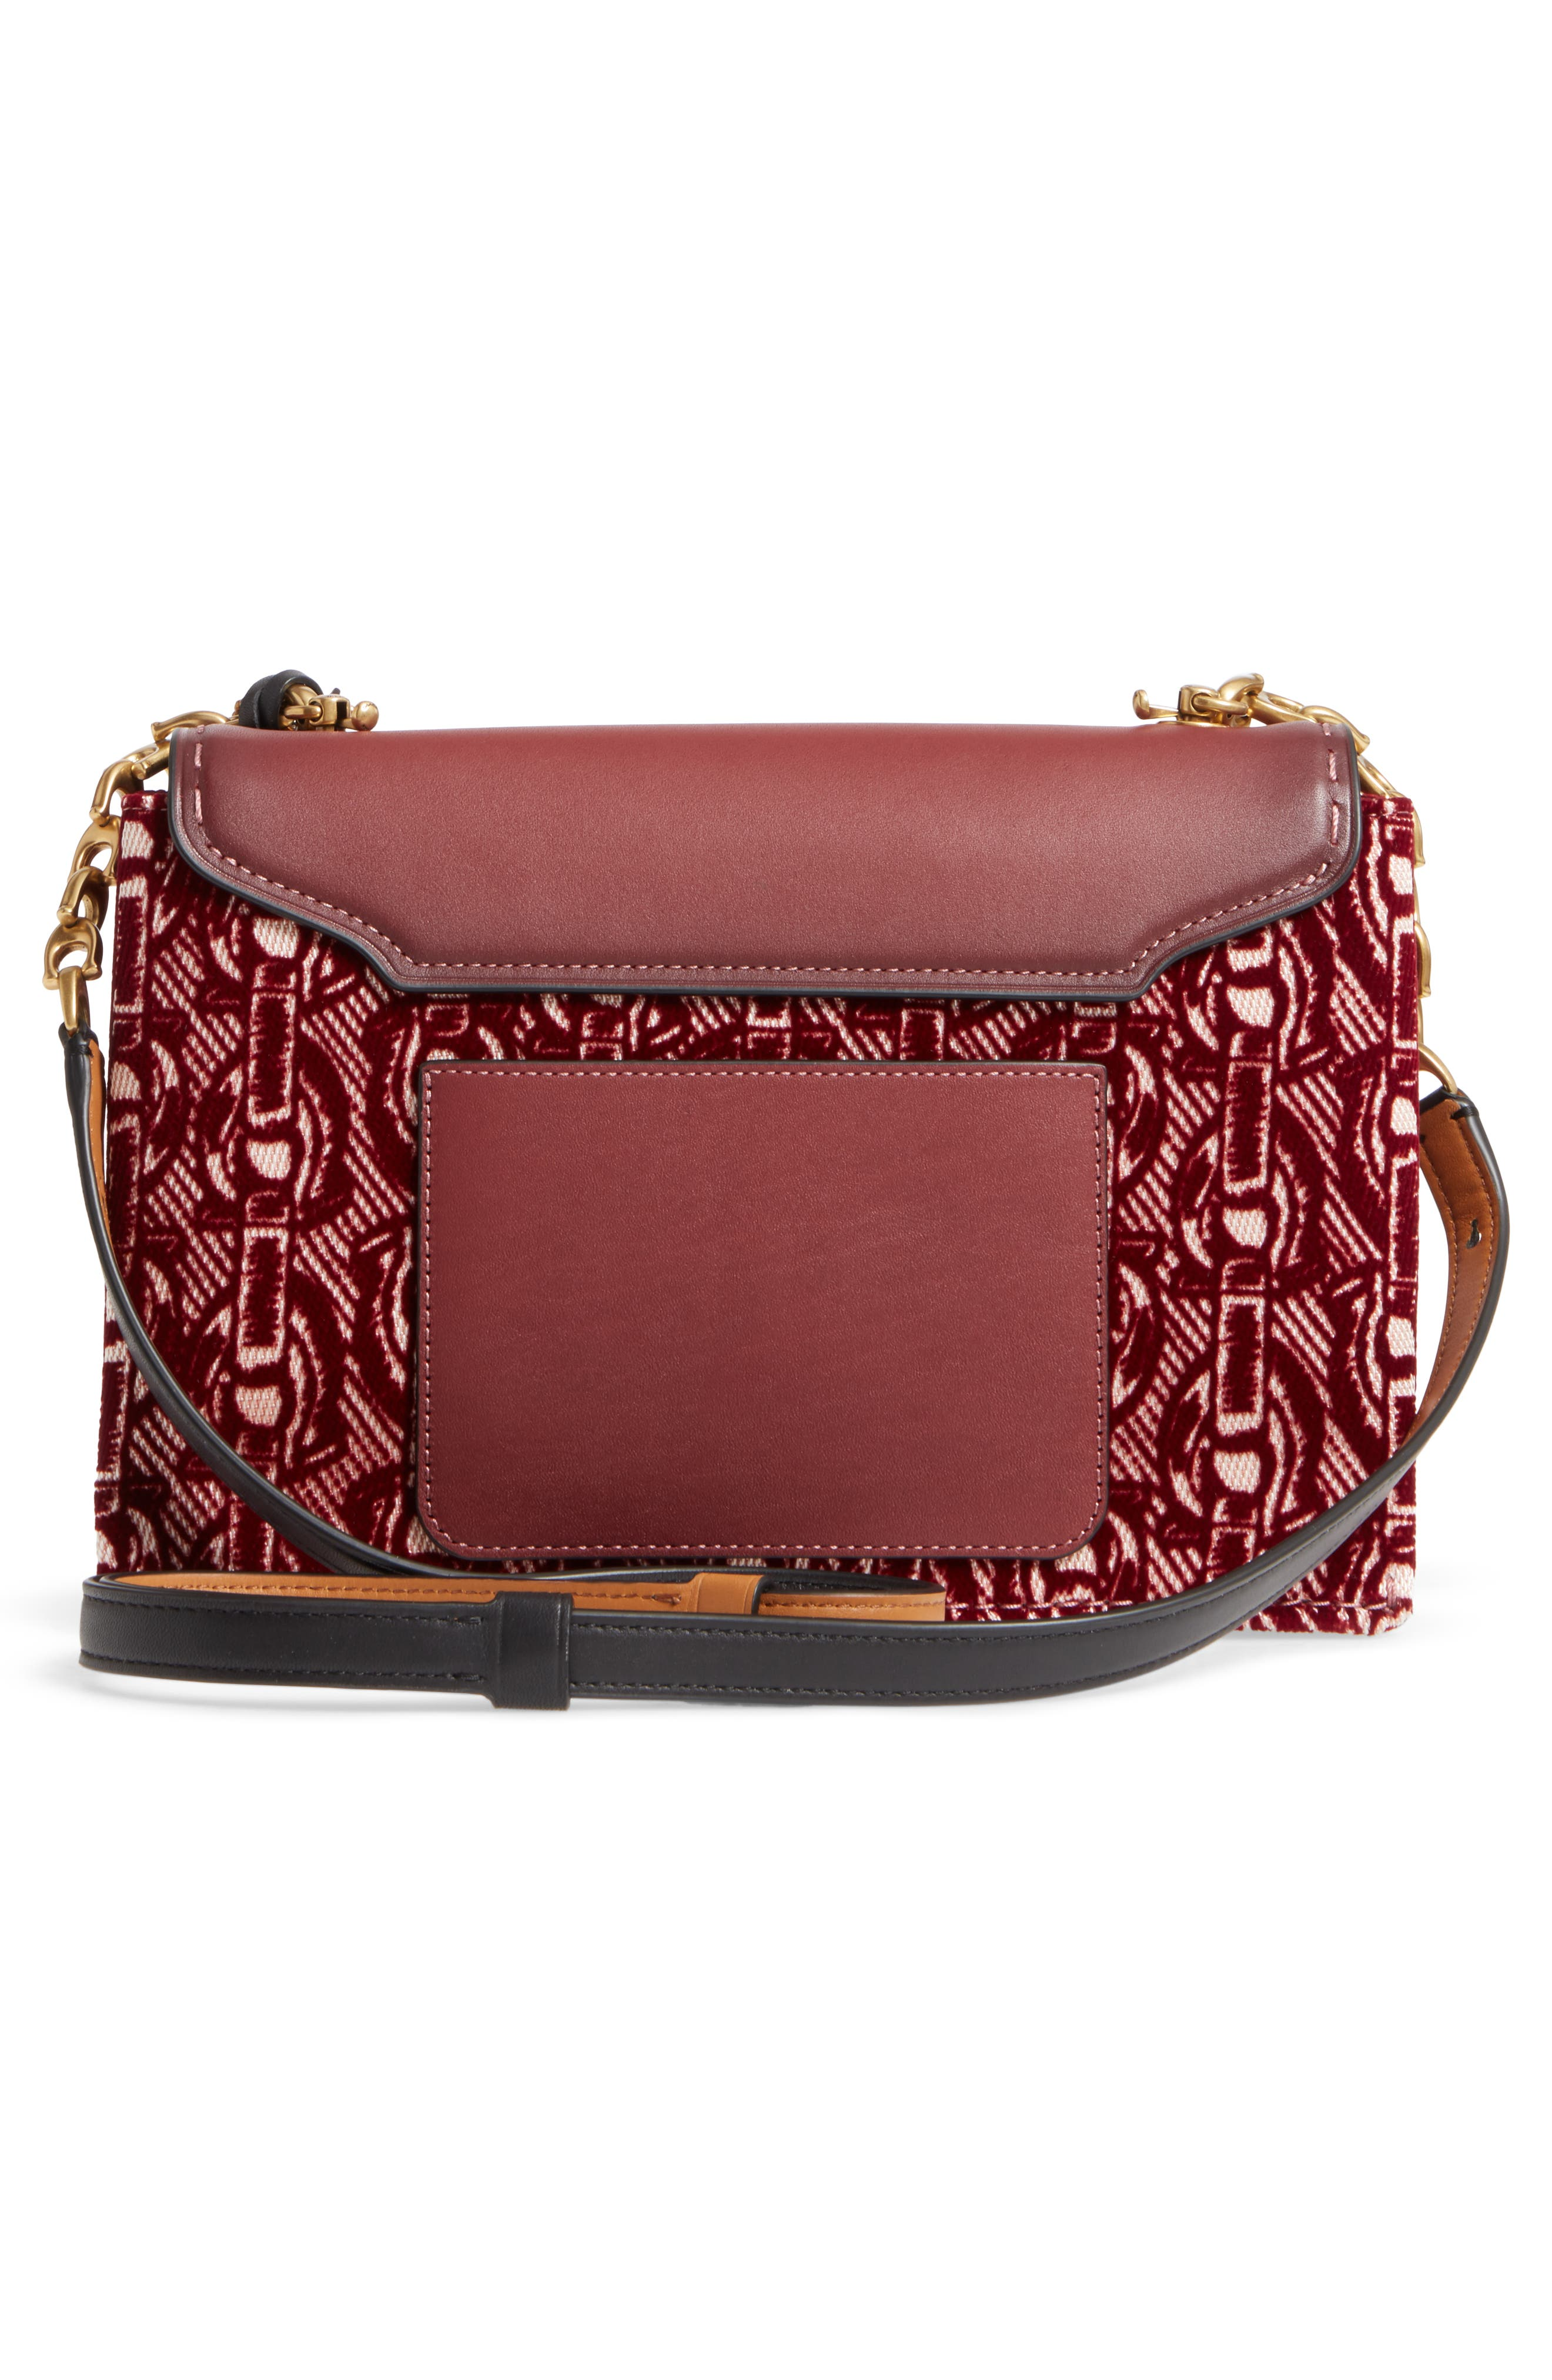 Swagger Chain Leather Crossbody Bag,                             Alternate thumbnail 3, color,                             Bordeaux